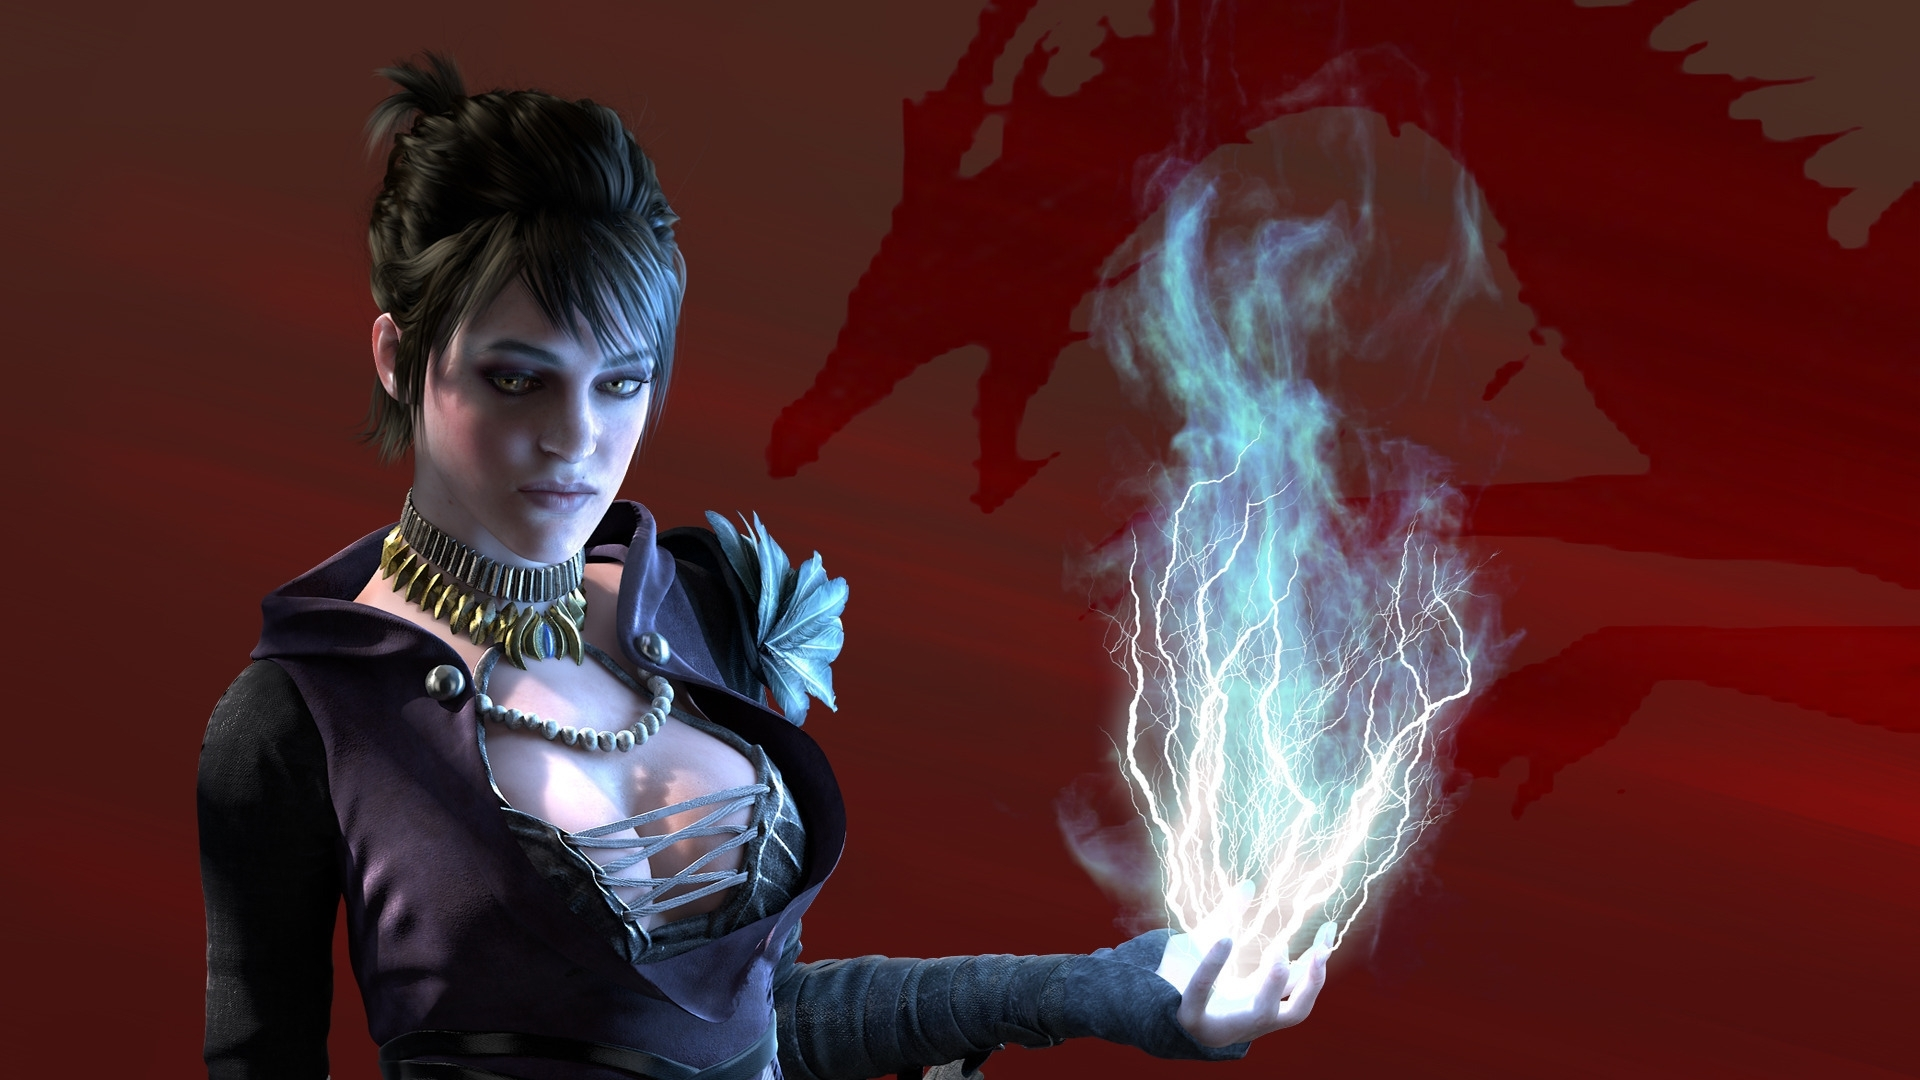 Title Dragon Age Origins Full Hd Wallpaper And Background Image Dimension 1920 X 1080 File Type JPG JPEG